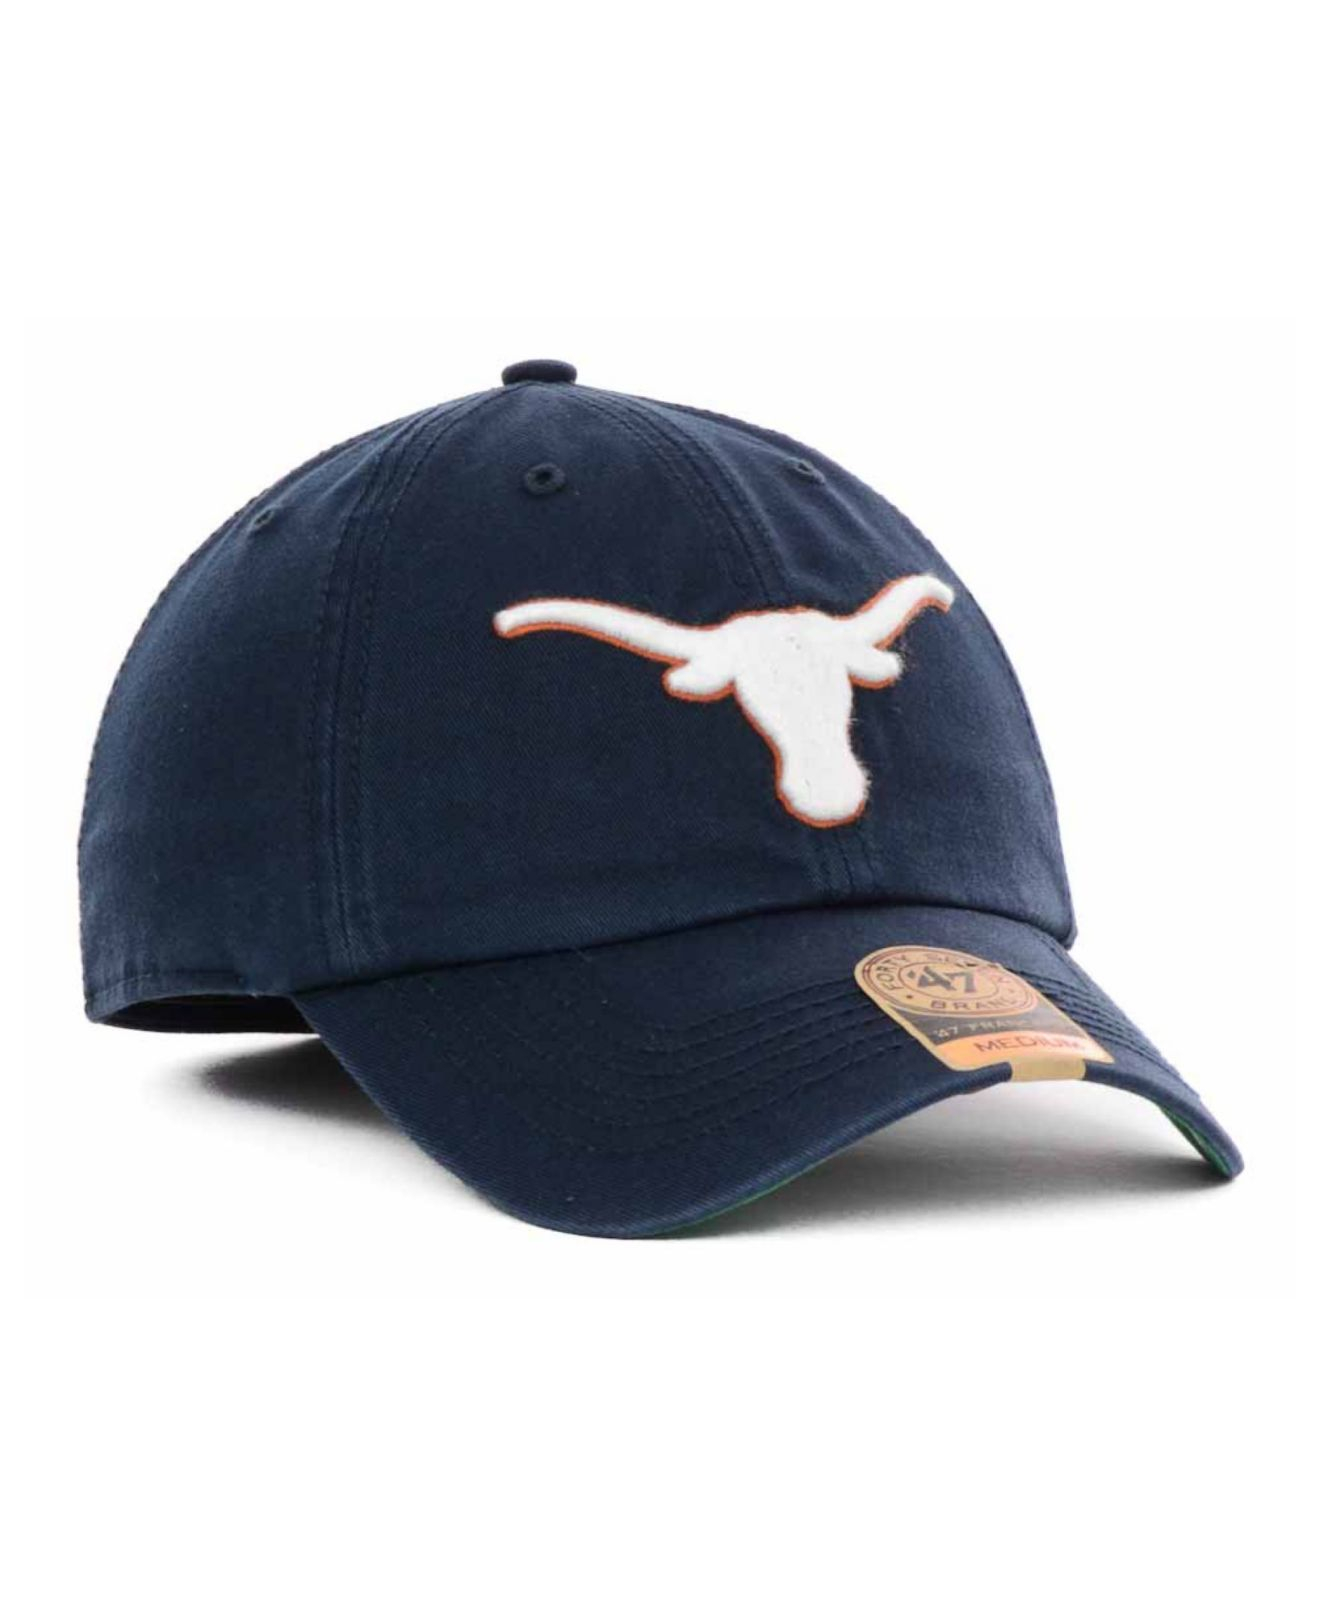 new styles 09d59 b279e reduced texas longhorns top of the world fitted hat the vault 1 2b358  a7fb7  italy lyst 47 brand texas longhorns navy franchise cap in blue for  men 62dfd ...